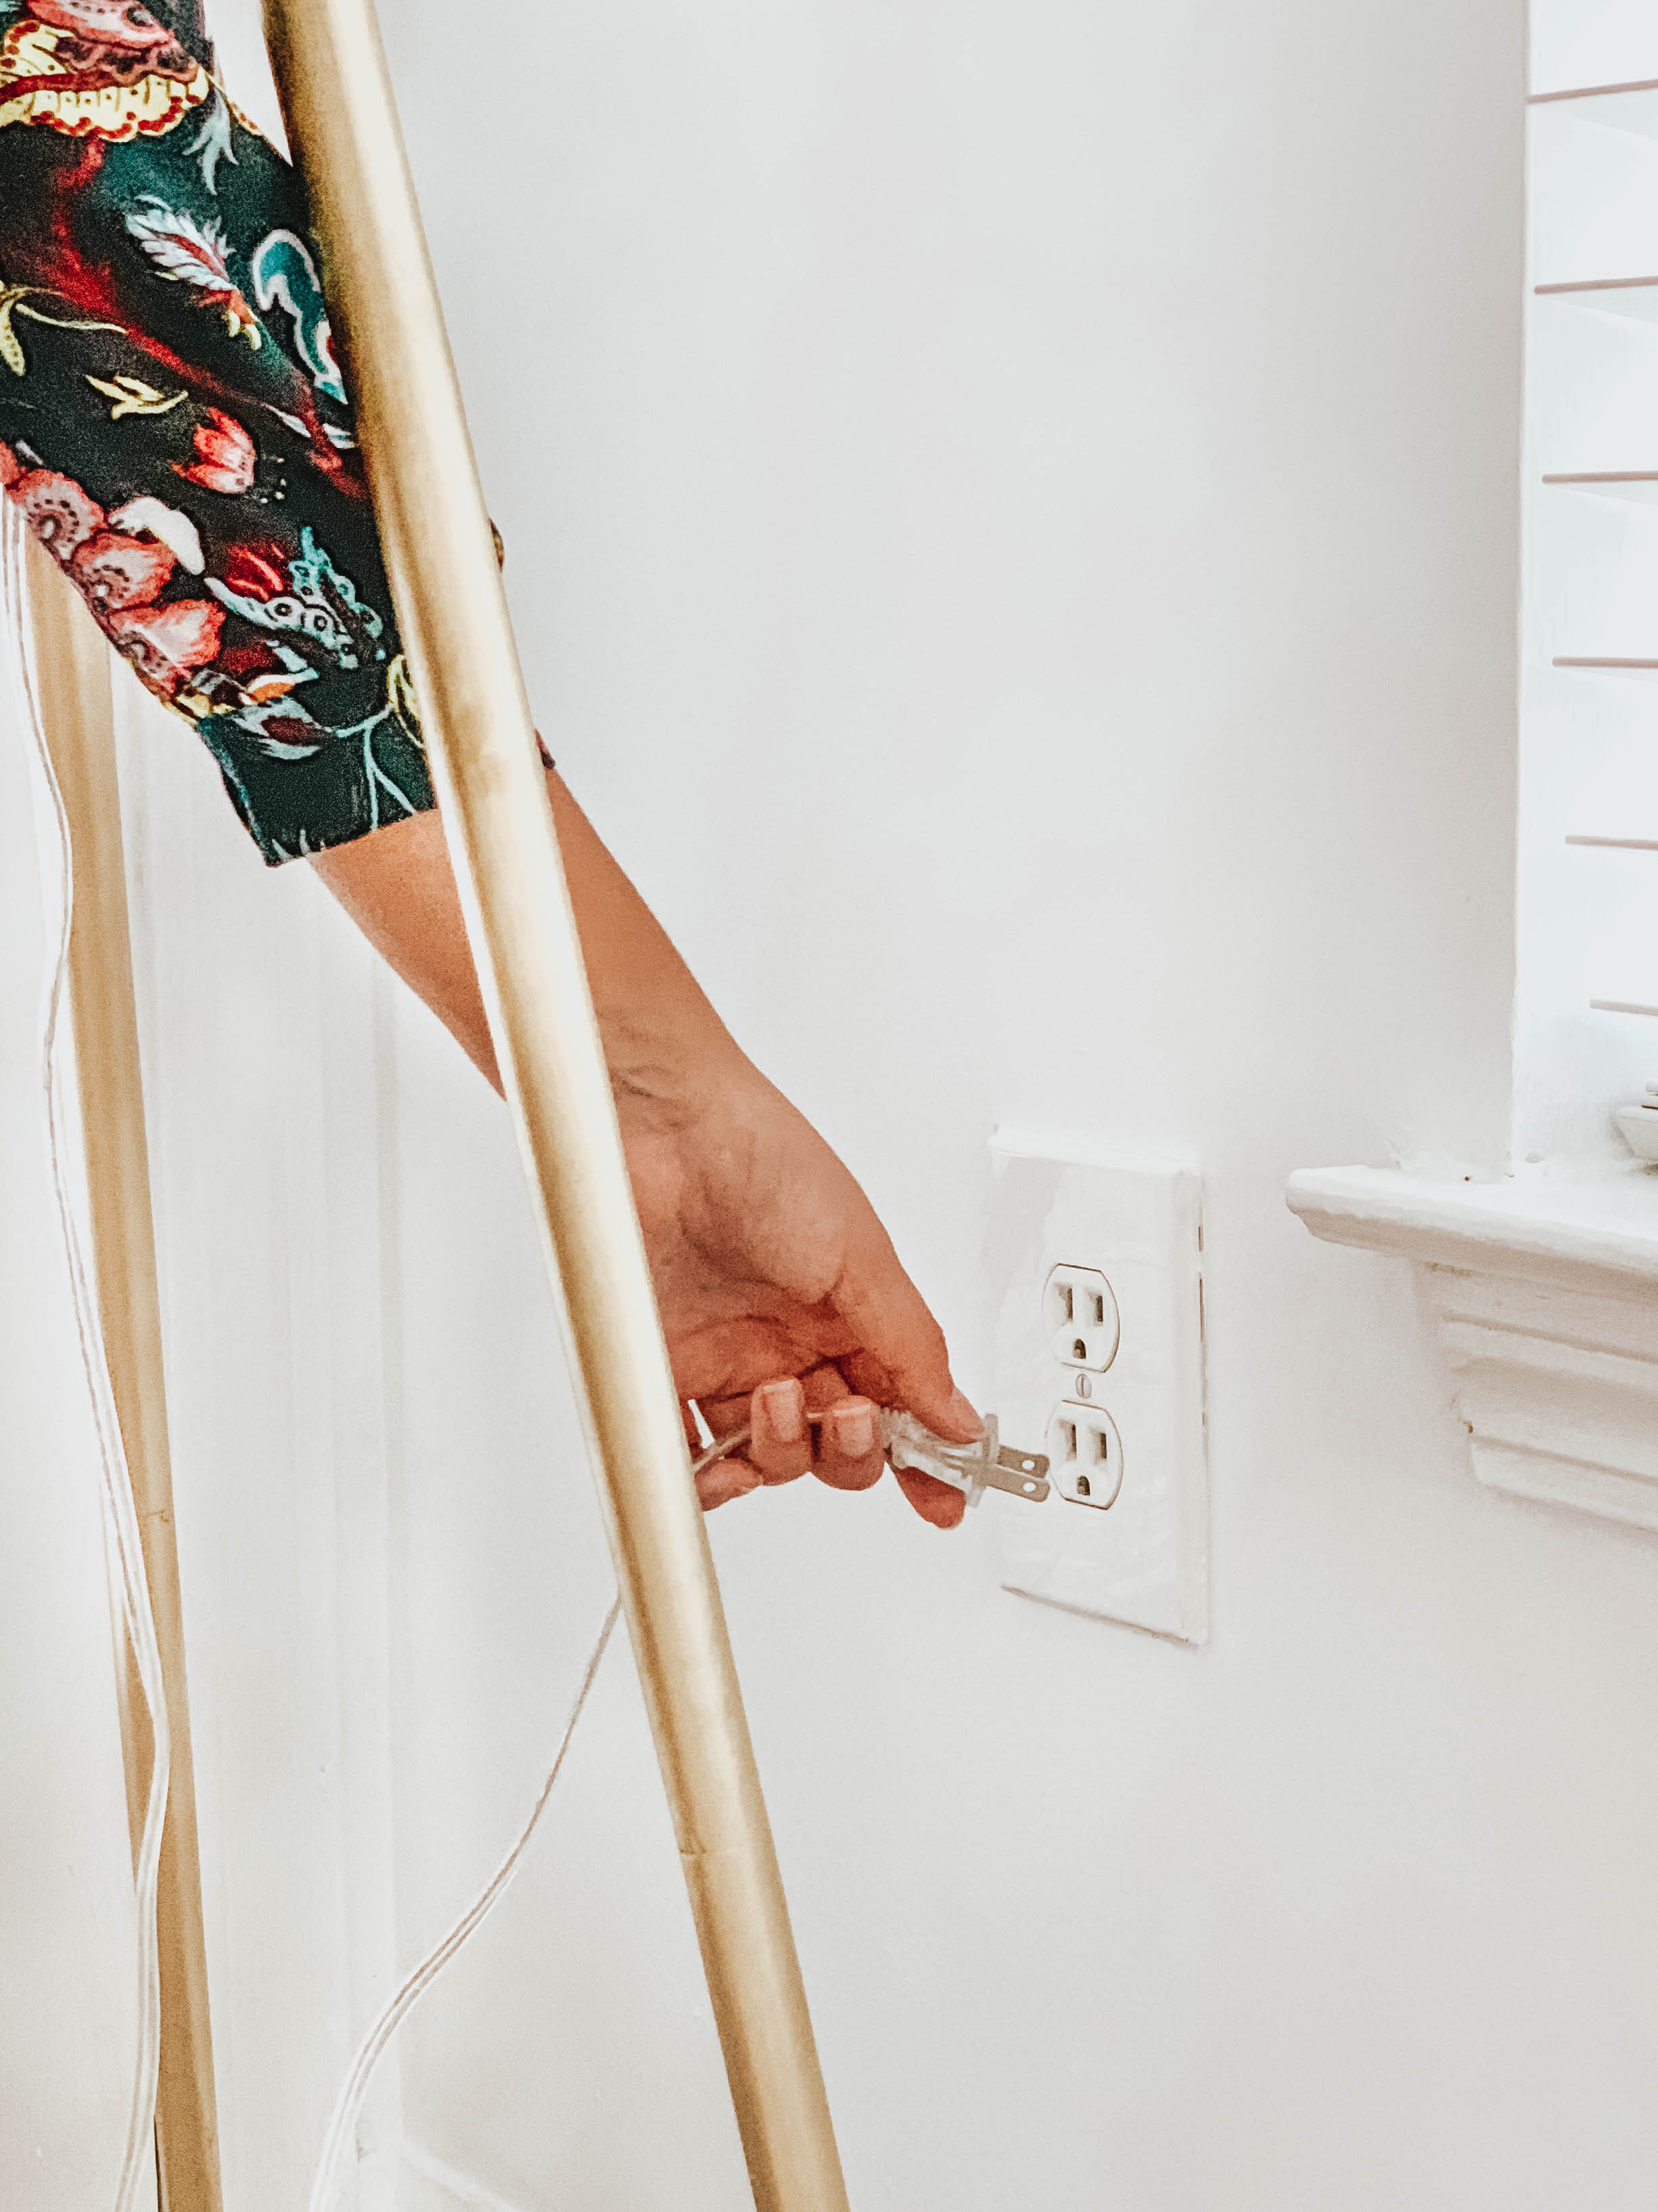 Girl Unplugging a Lamp from an Outlet